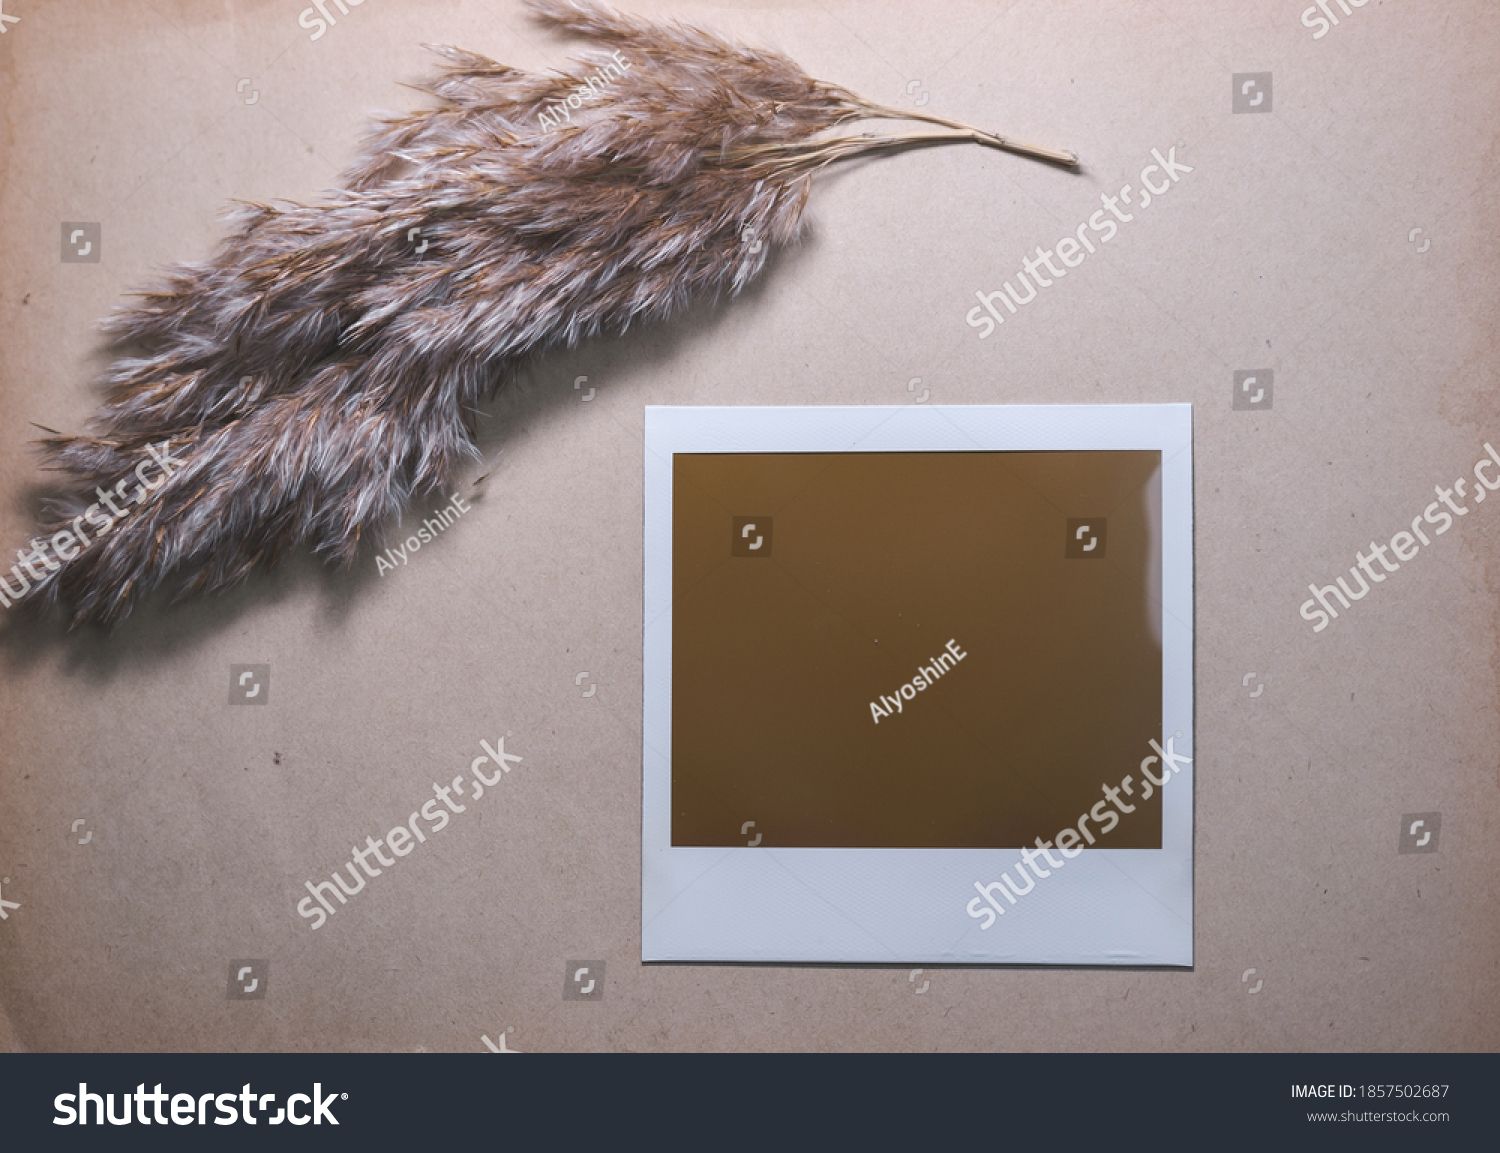 Blank photo frame with reed isolated on brown background as template for graphic designers cards, memories. Photo card with space for your logo or text.  #1857502687